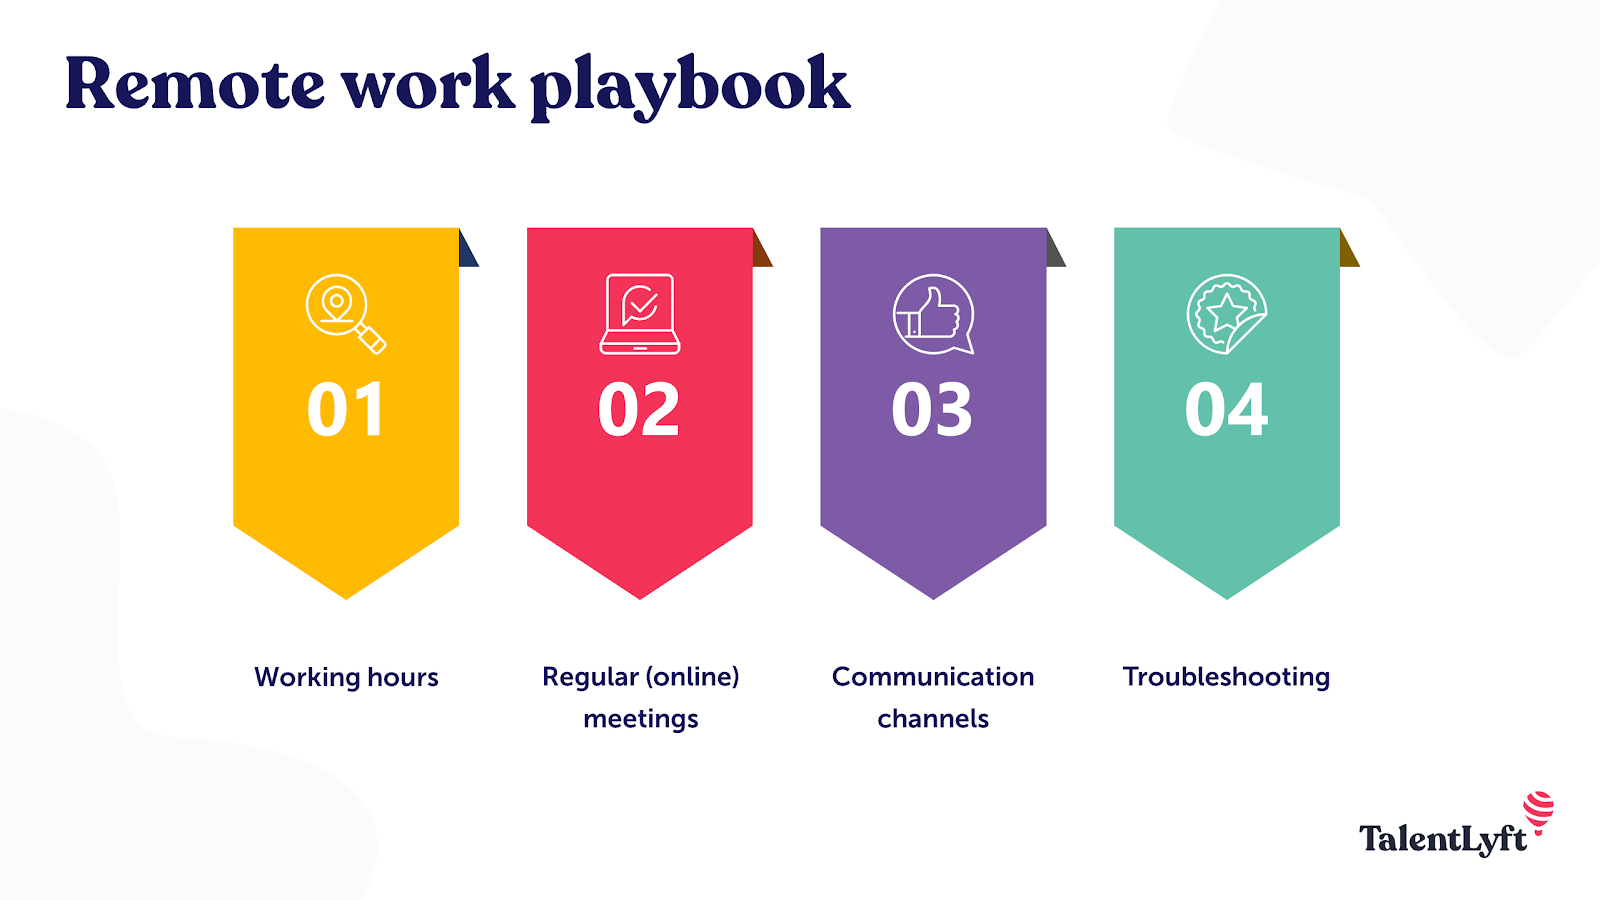 Remote work playbook